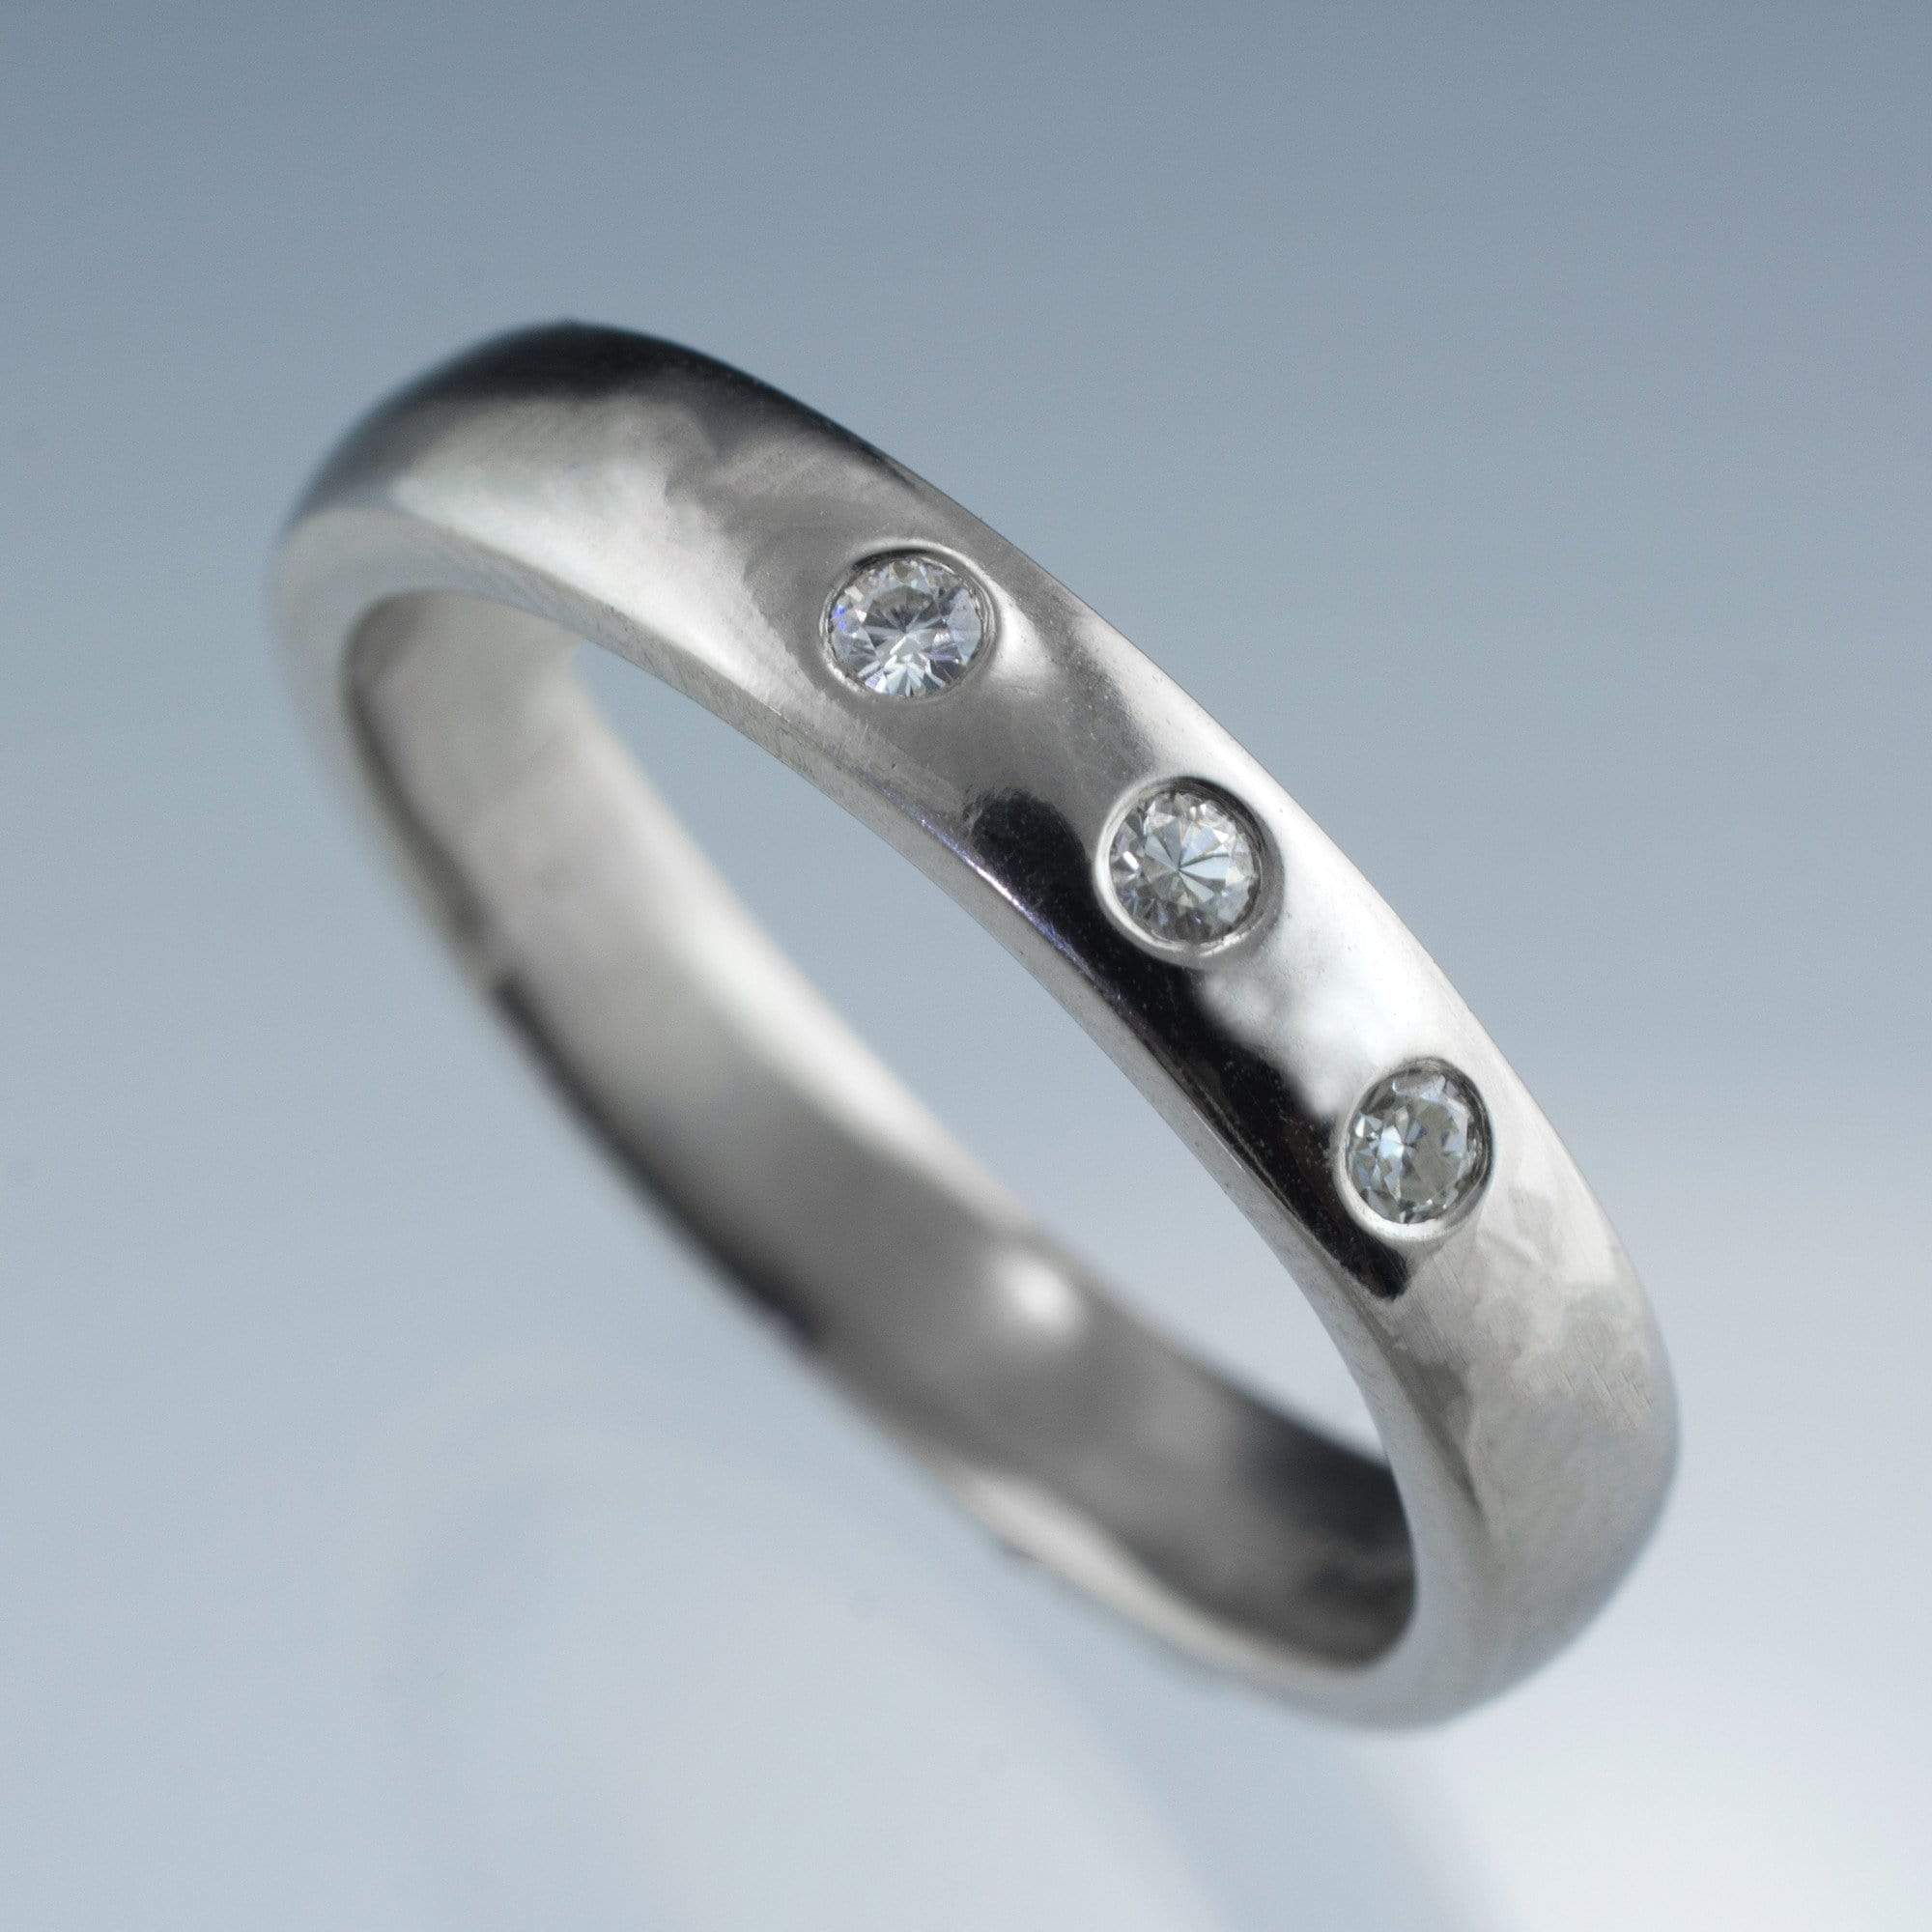 Narrow 3 Diamond Wedding Ring - by Nodeform